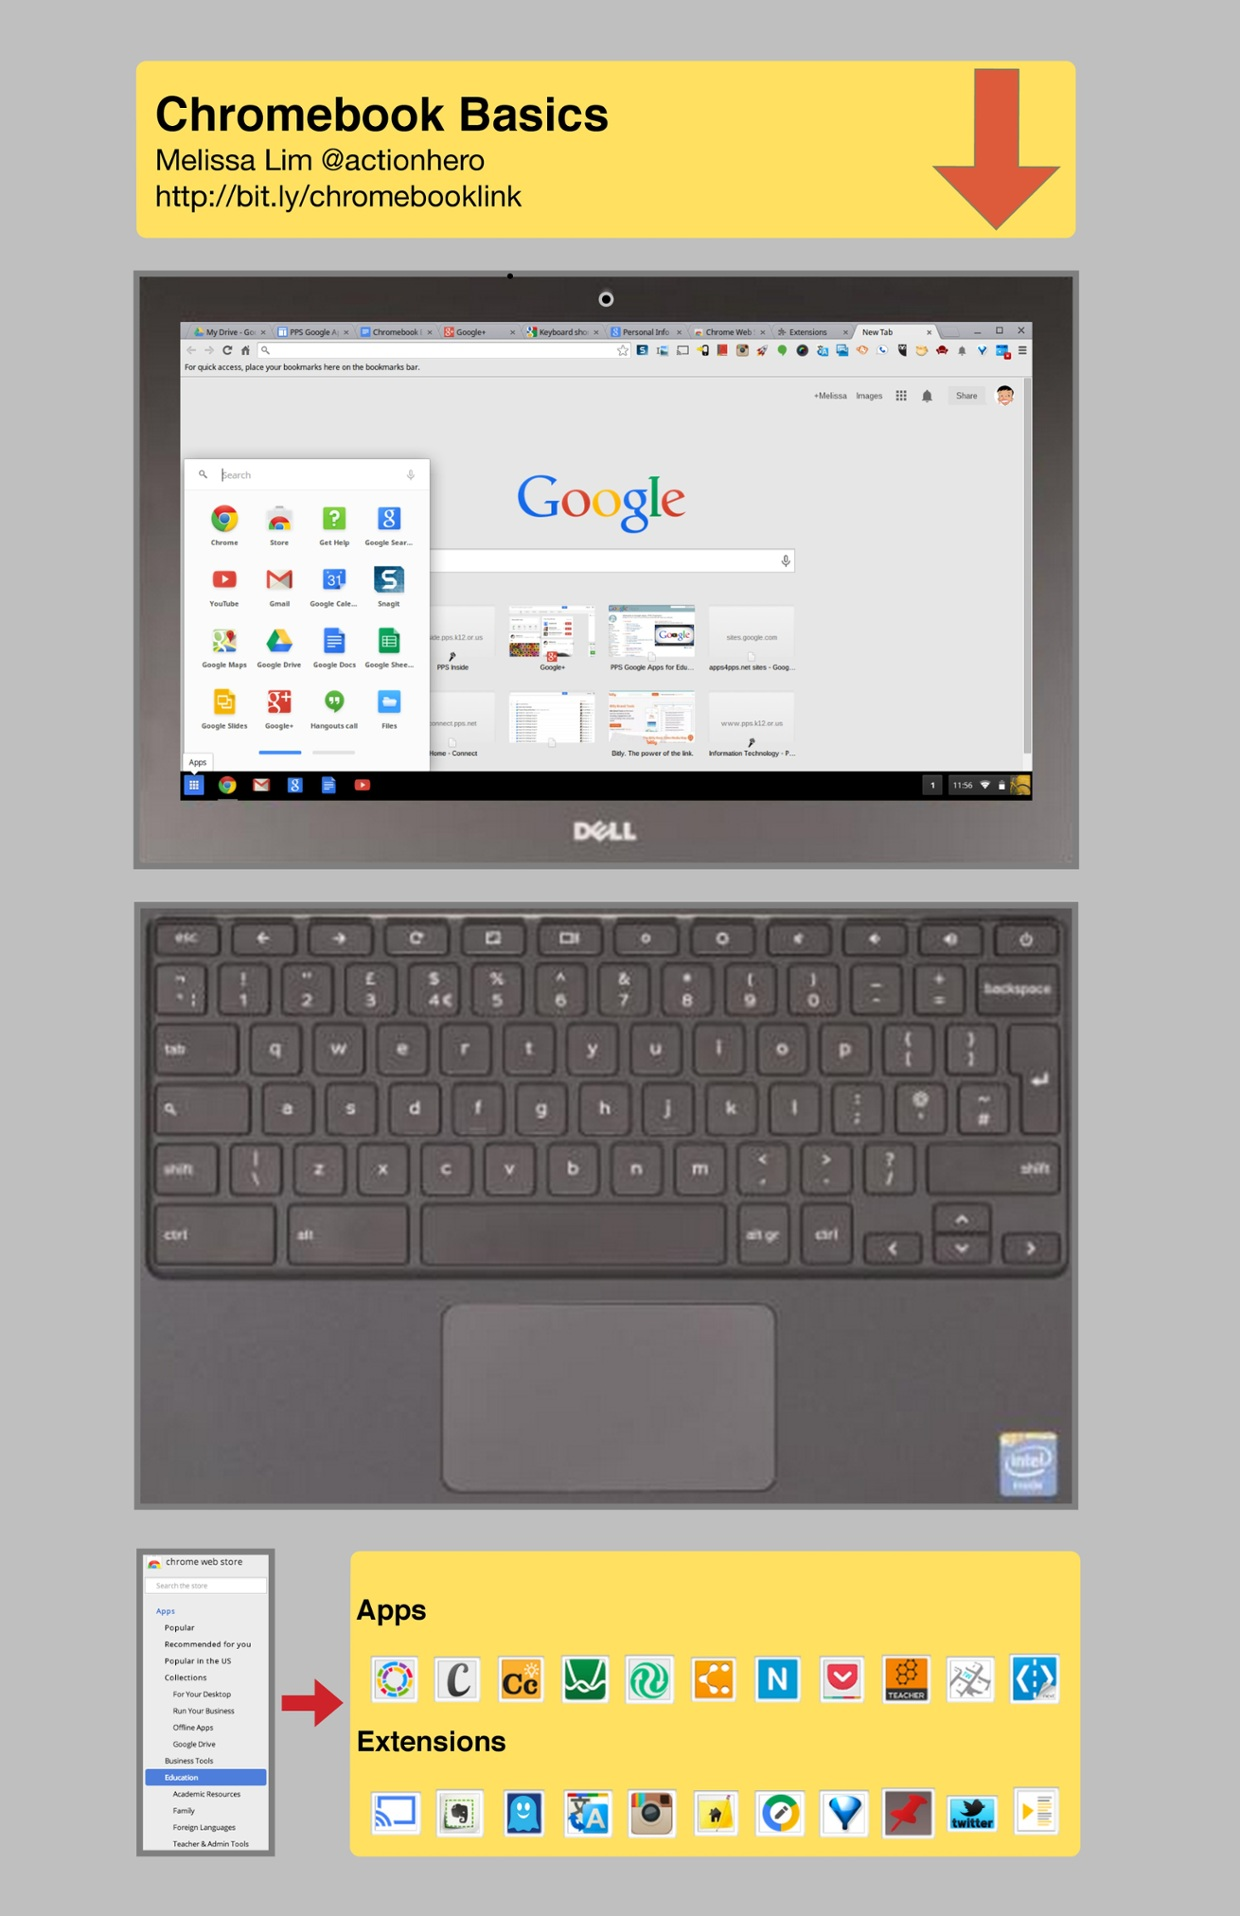 Chromebook Basics